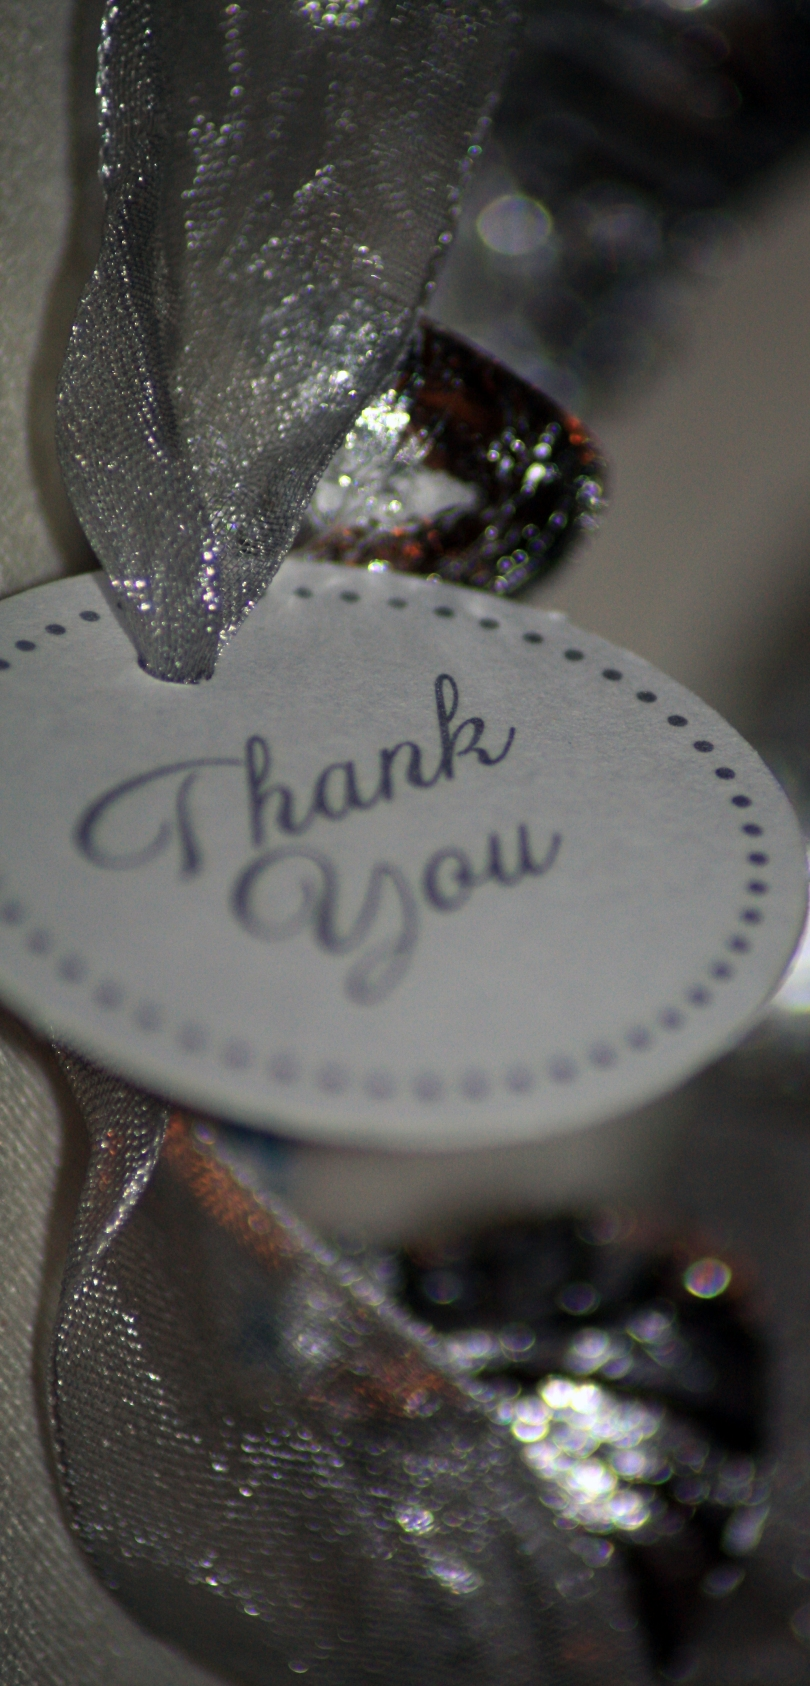 "A round cardboard tag with the words ""Thank You,"" surrounded by silver dots around the edge of the tag, appears in the center of the frame. Extending through a hole in the top of the tag, behind the tag, and stretching to the top and bottom of the frame is a metallic silver ribbon."